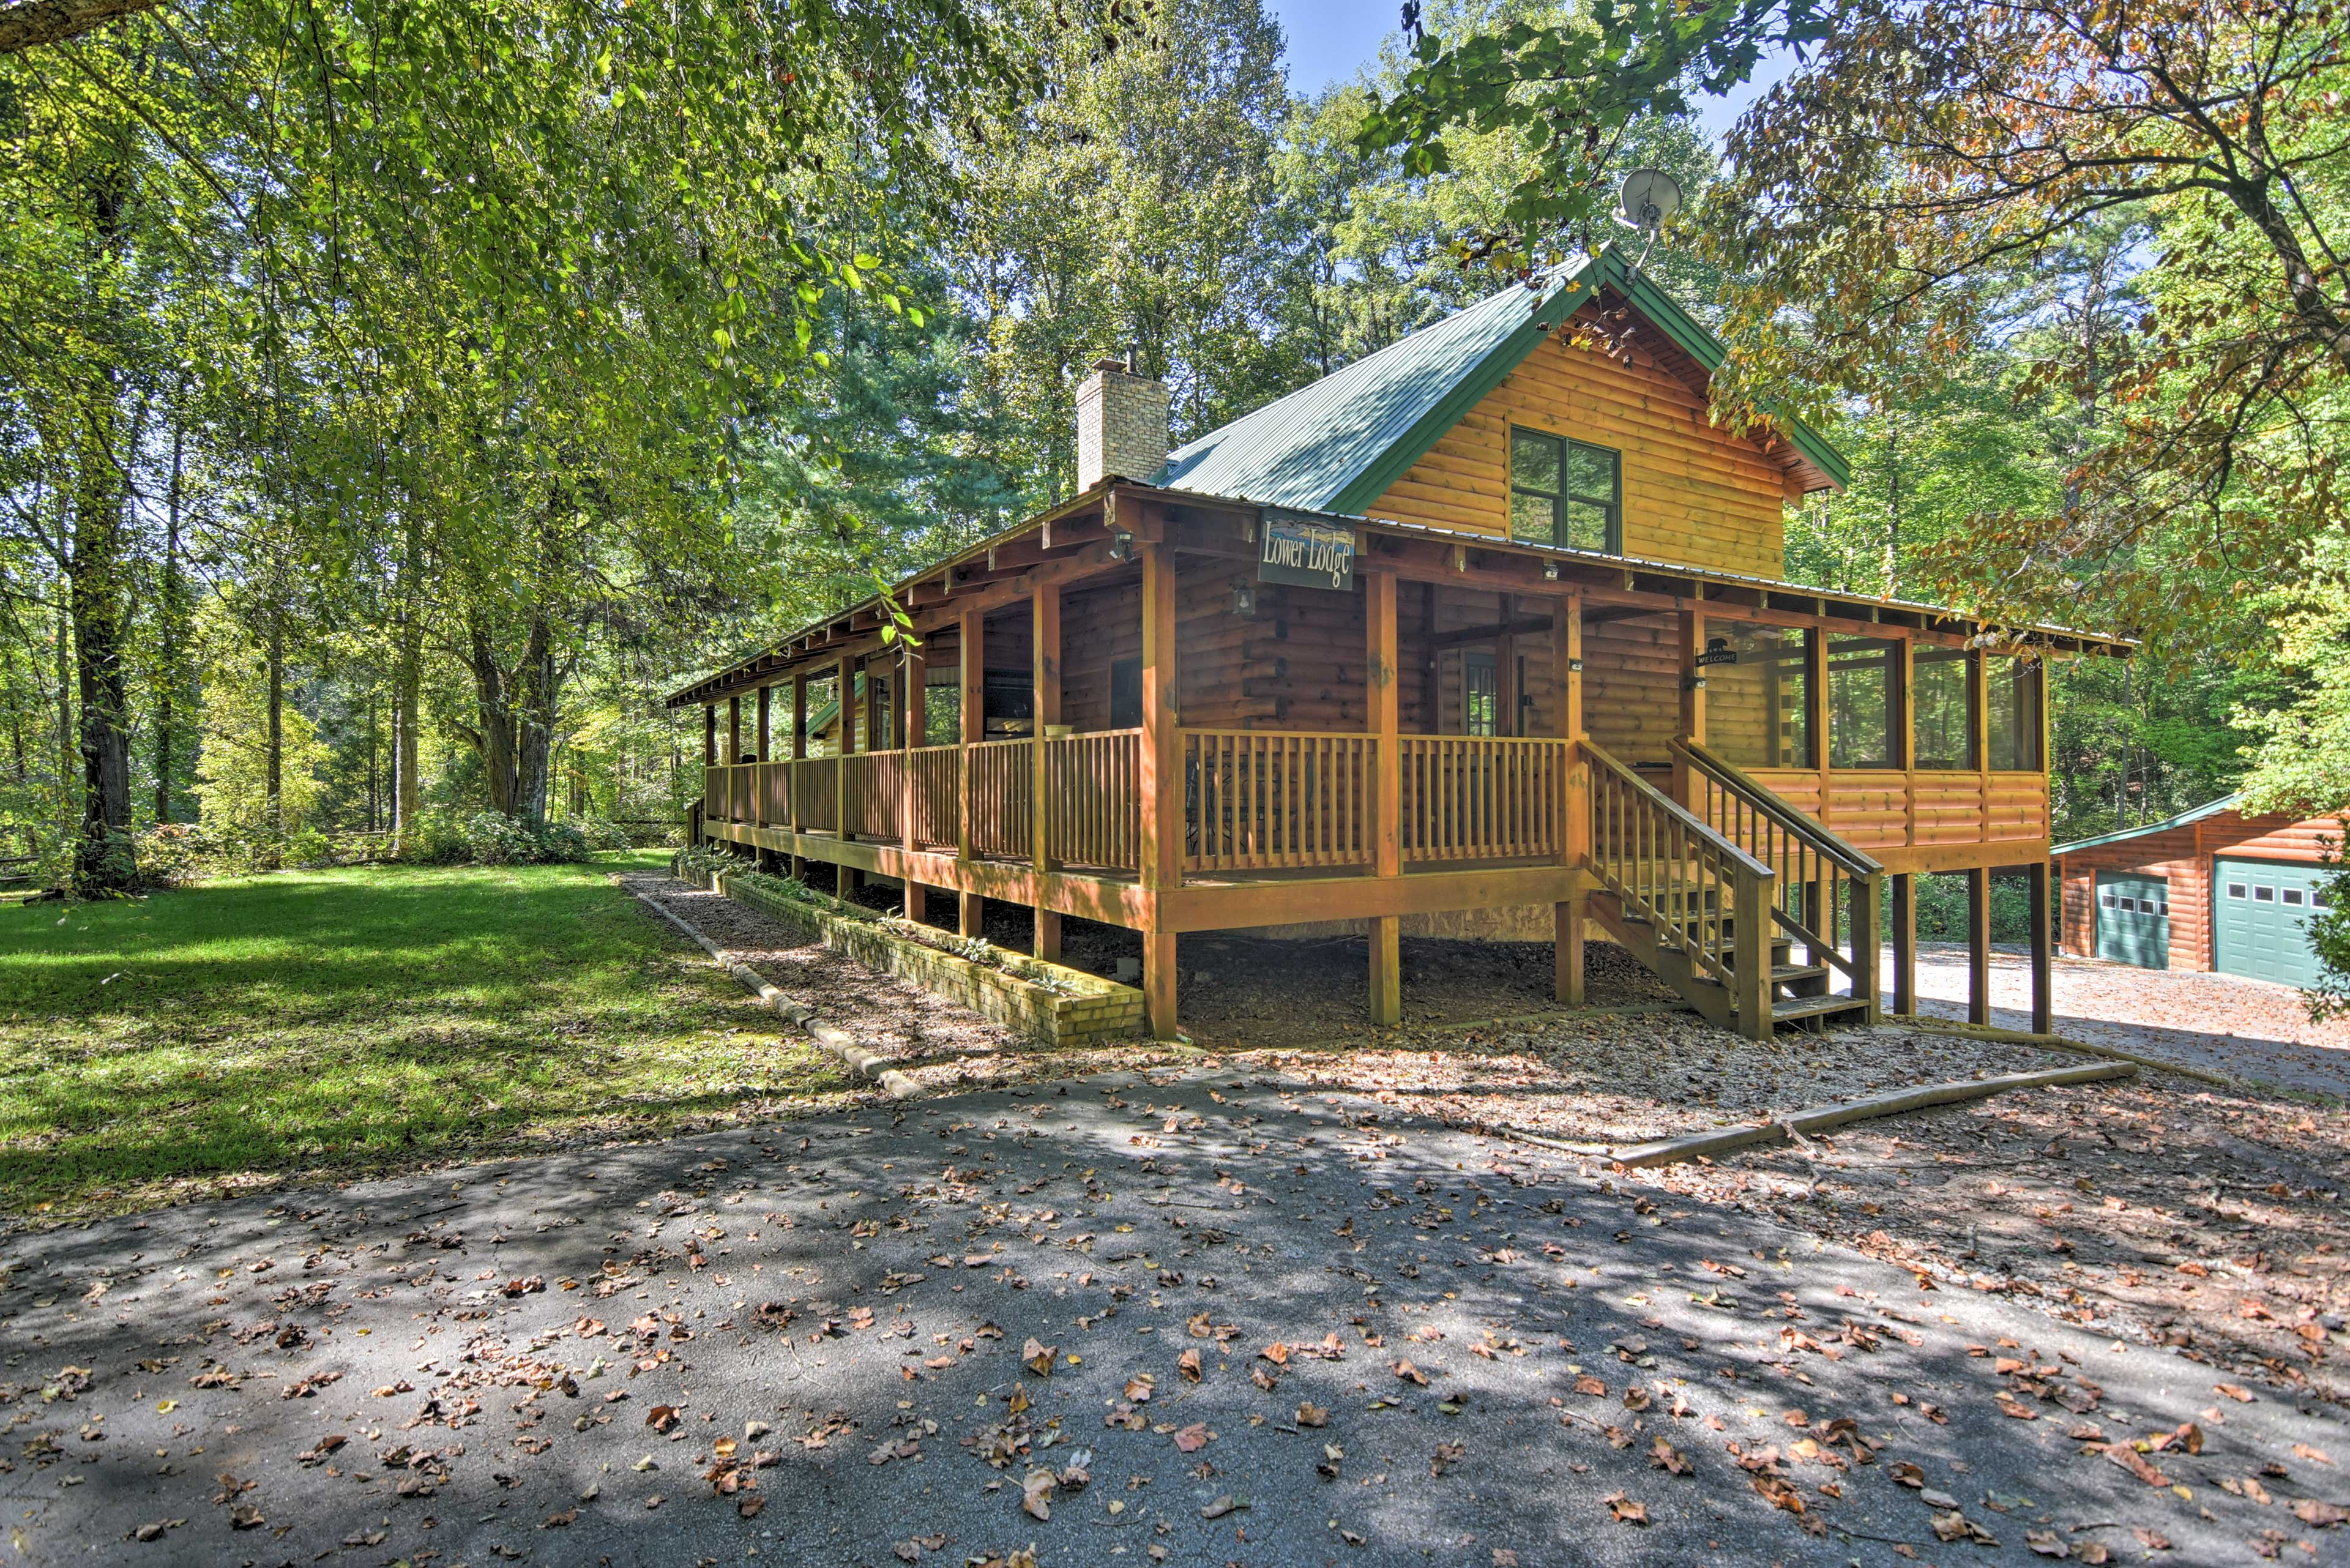 The Lower Lodge sleeps up to 12 guests outside Gorges State Park in Brevard.